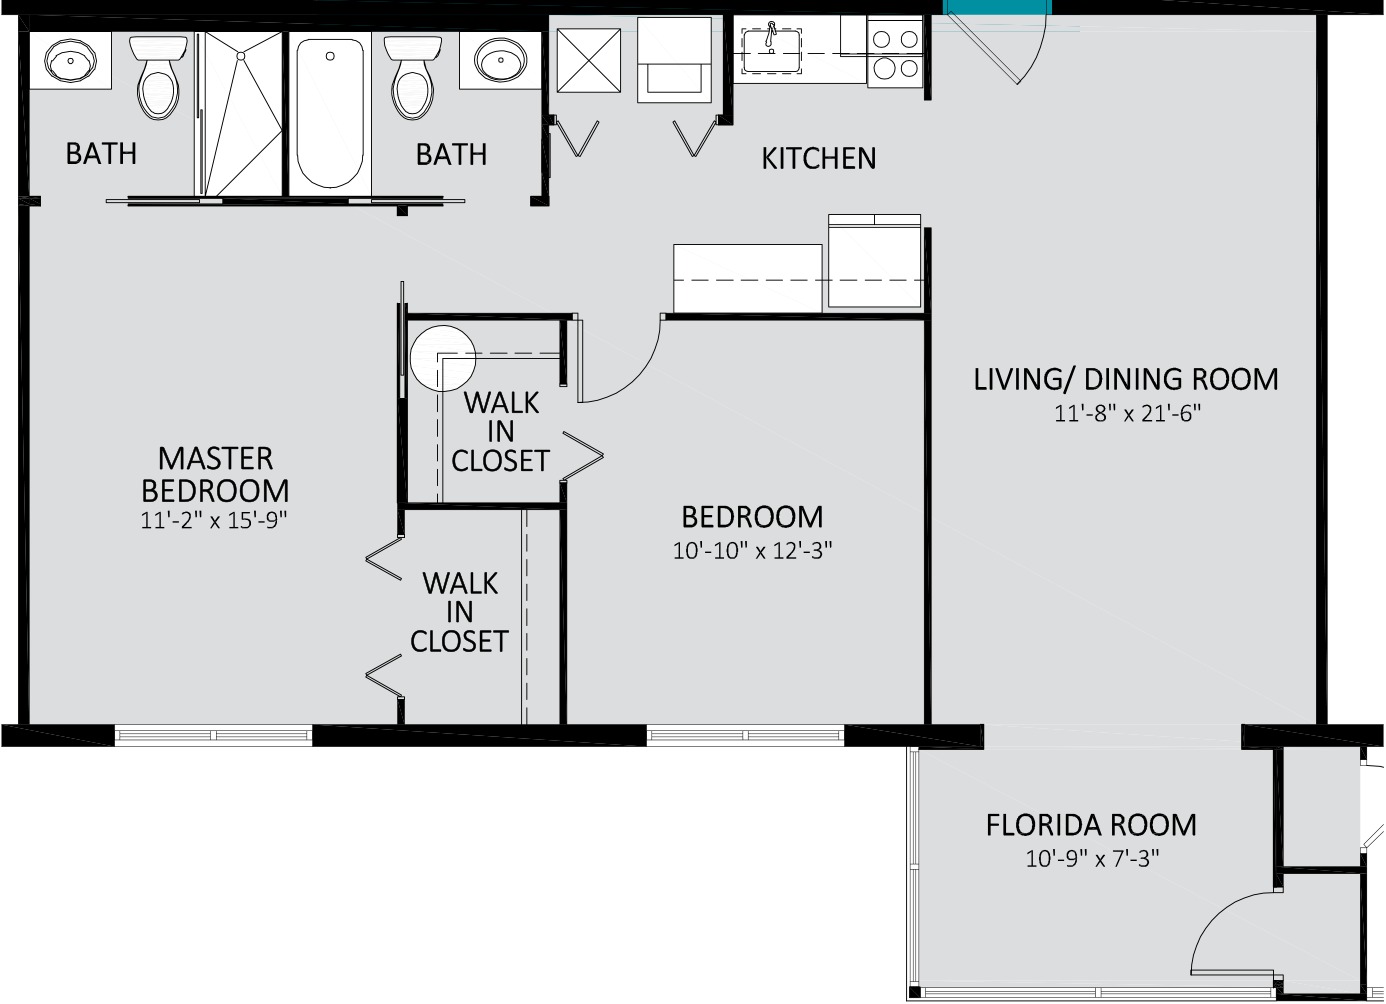 SAE Ocean Breeze ABCDE Traditional Two Bedroom 923 Sq Ft.png